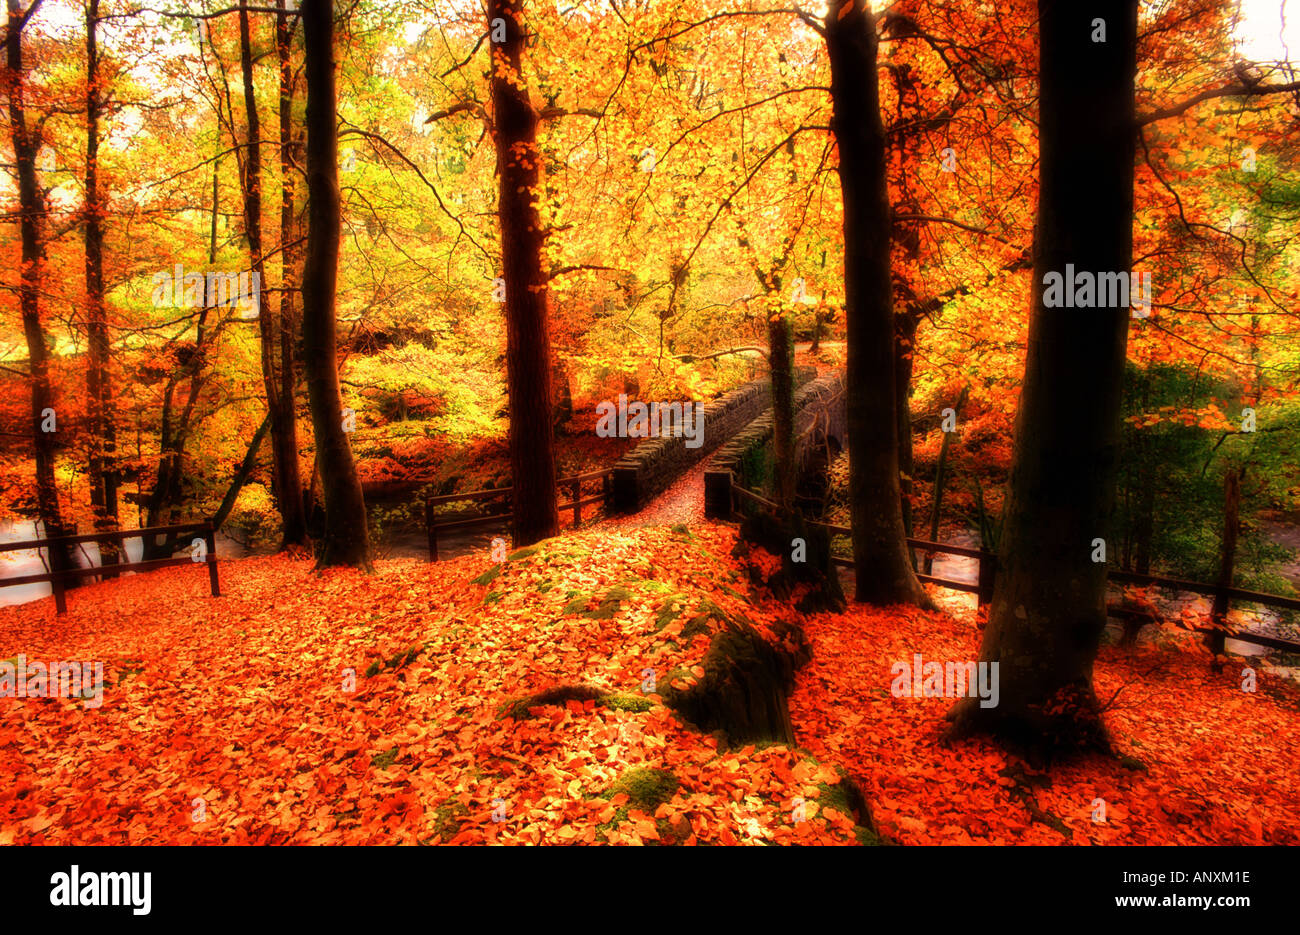 trees in forest autumn fall time golden brown yellow carpet of